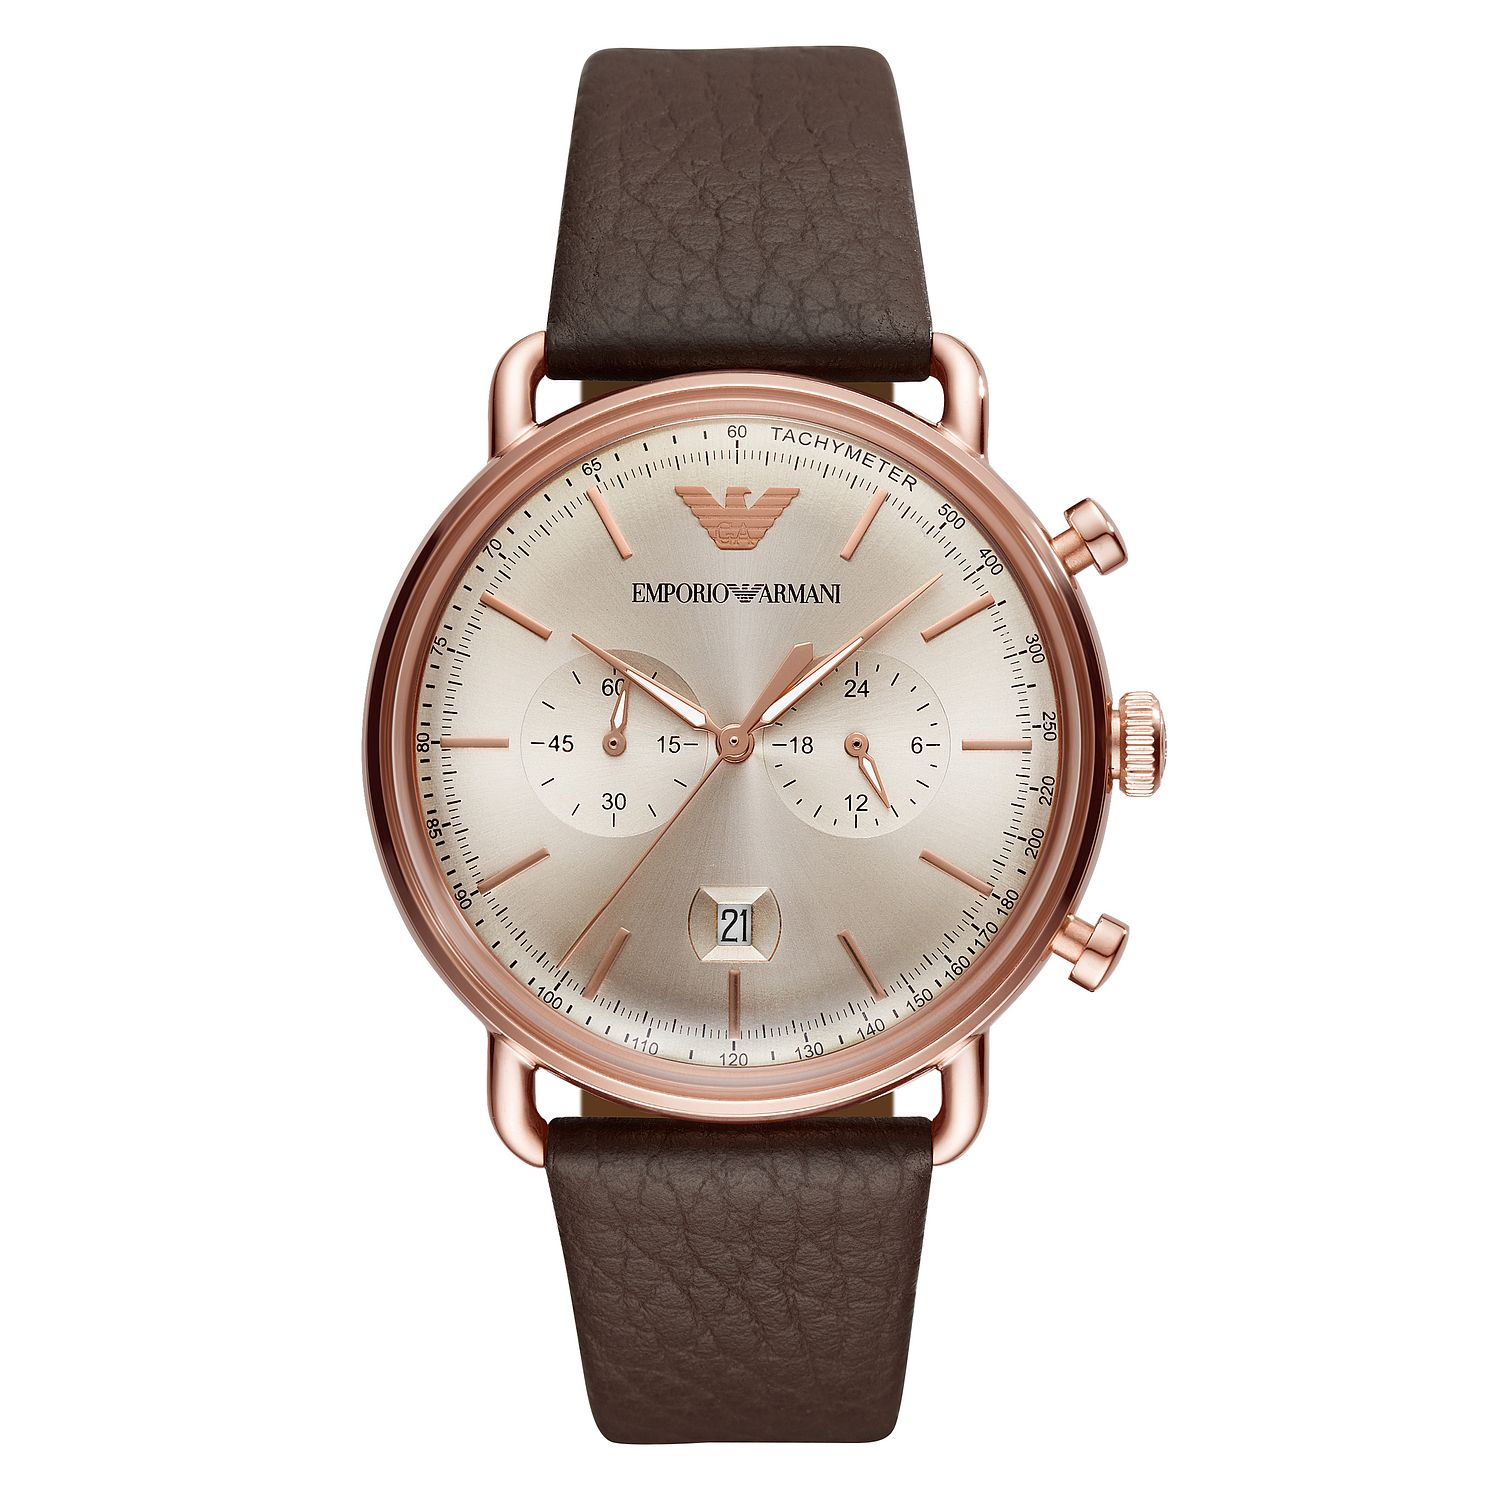 Emporio Armani Men's Rose Gold Tone Chronograph Watch - Product number 4115252